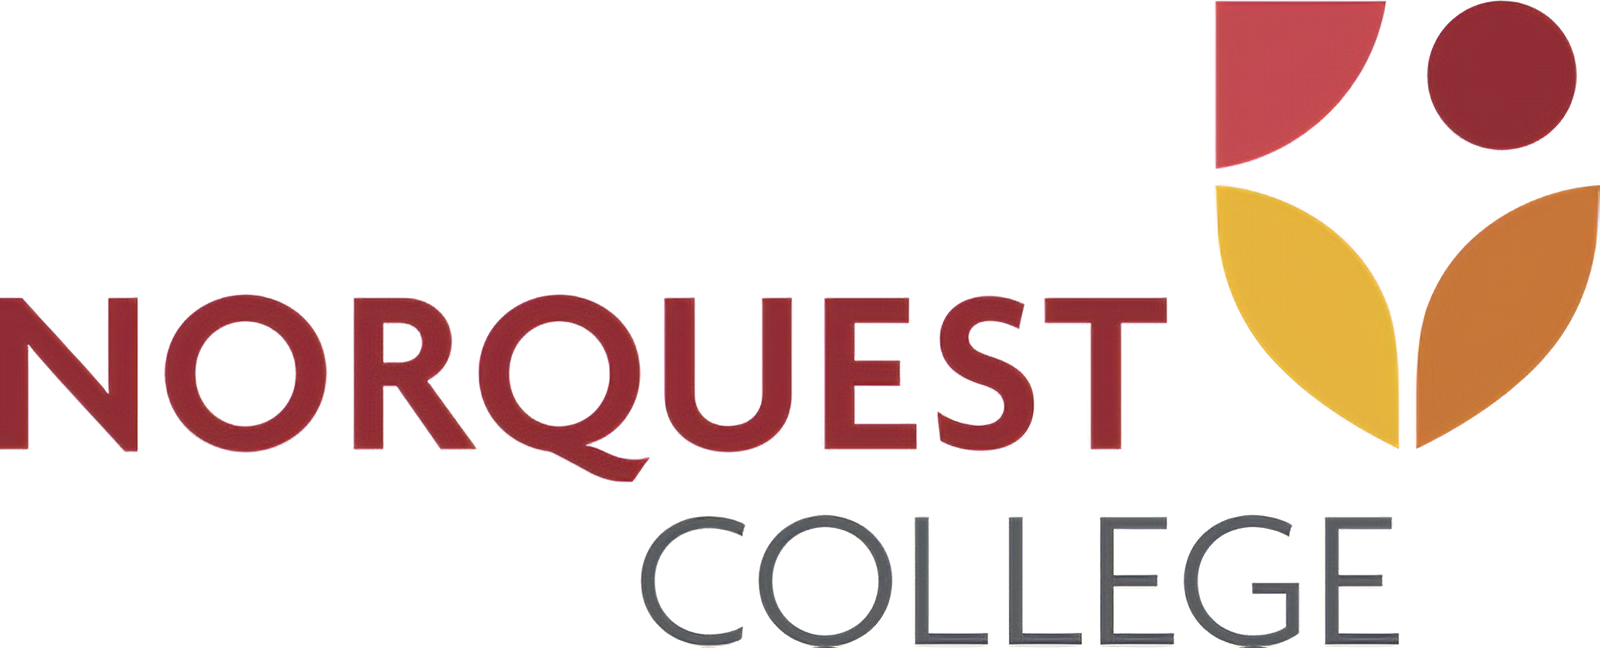 NorQuest College